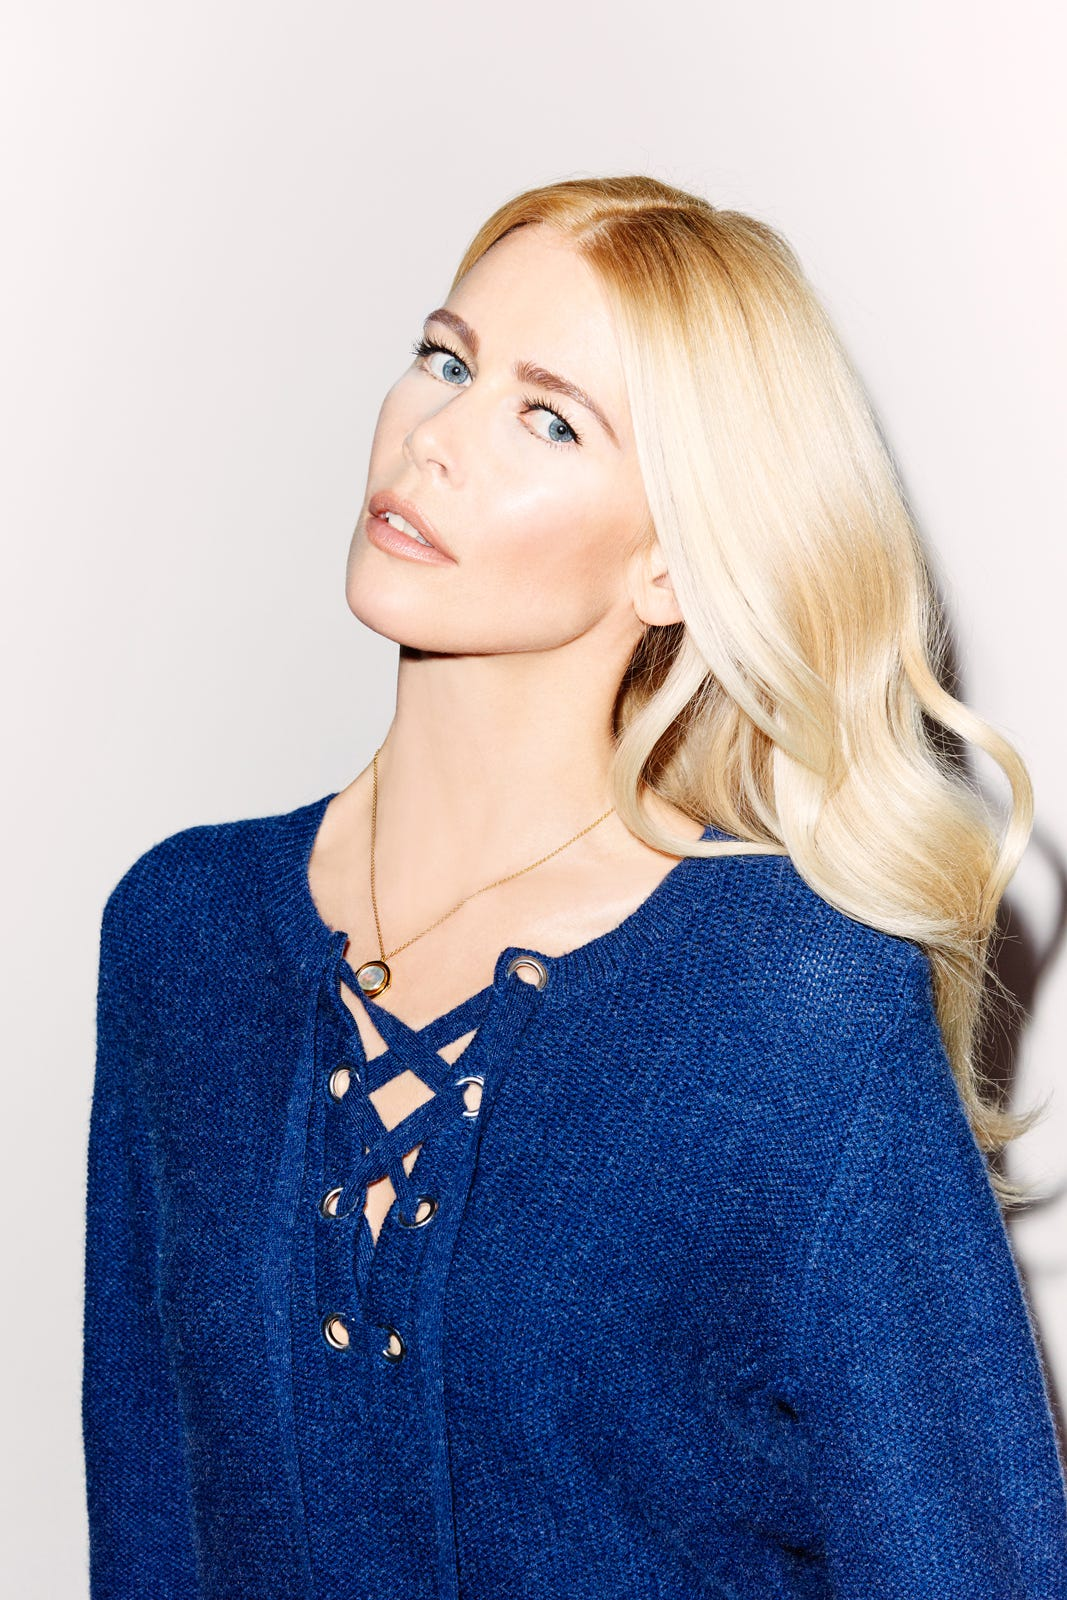 Claudia Schiffer New Clothing Line Stylebop Knitwear